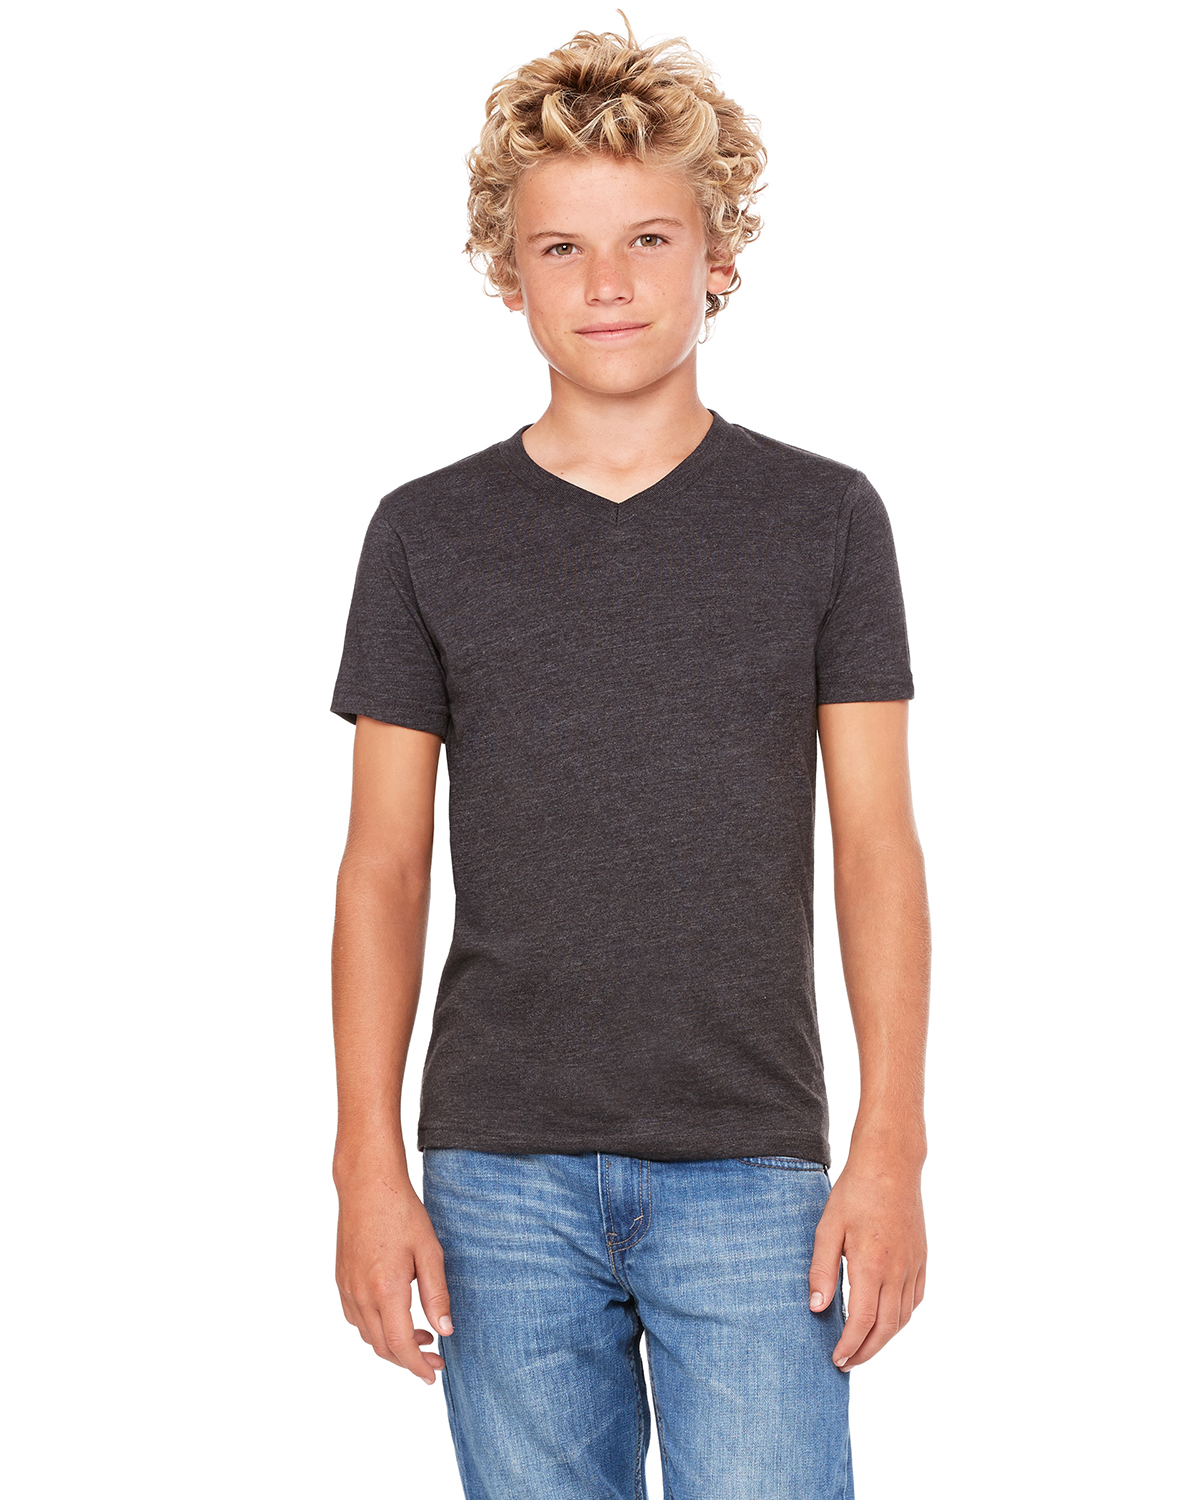 Canvas Bella Youth Jersey Short-Sleeve V-Neck T-Shirt